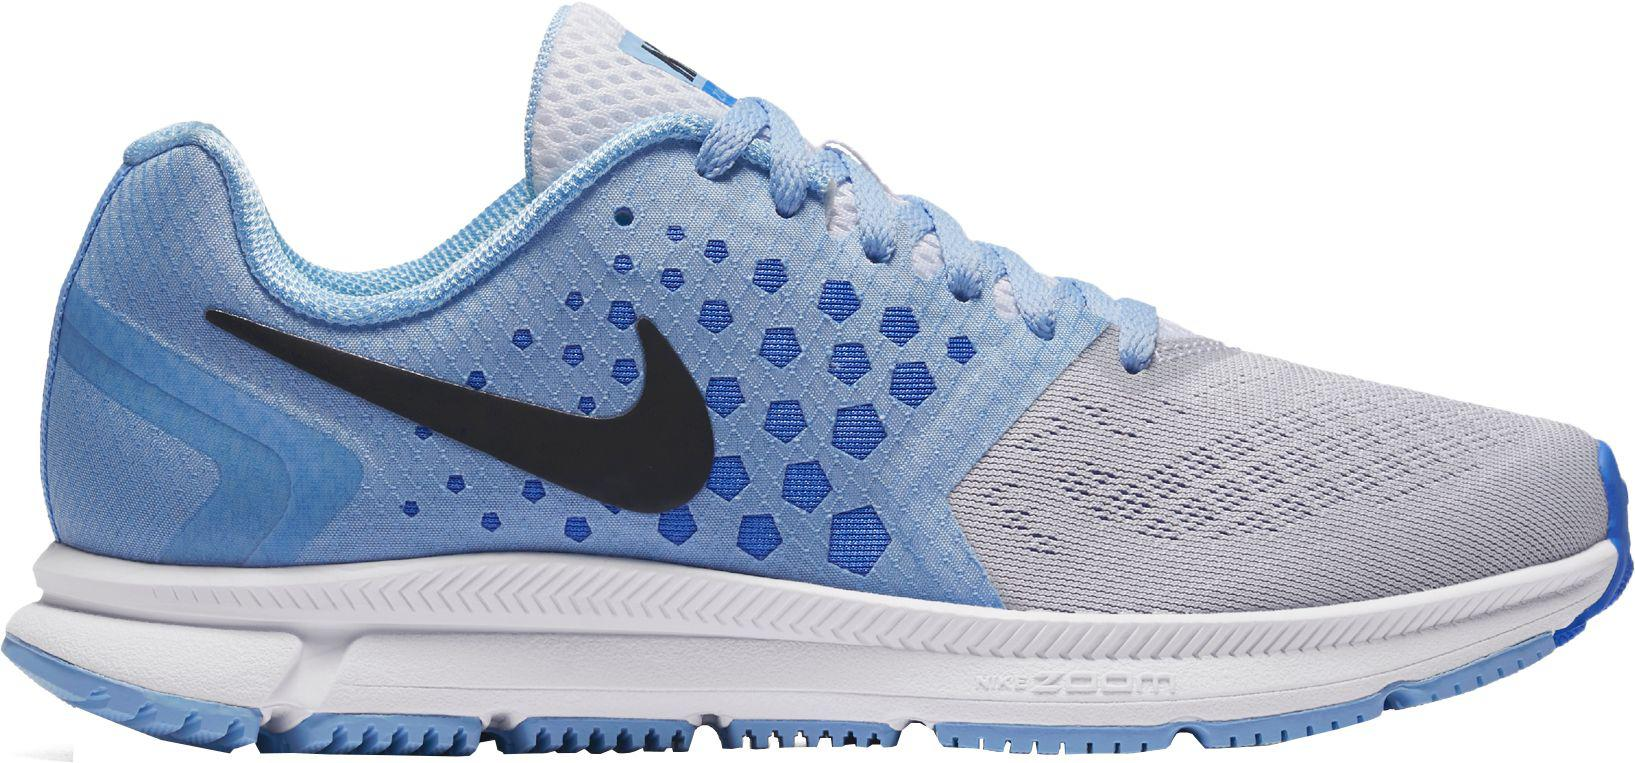 finest selection 04ede 46e4a Nike - Blue Air Zoom Span Shield Running Shoes for Men - Lyst